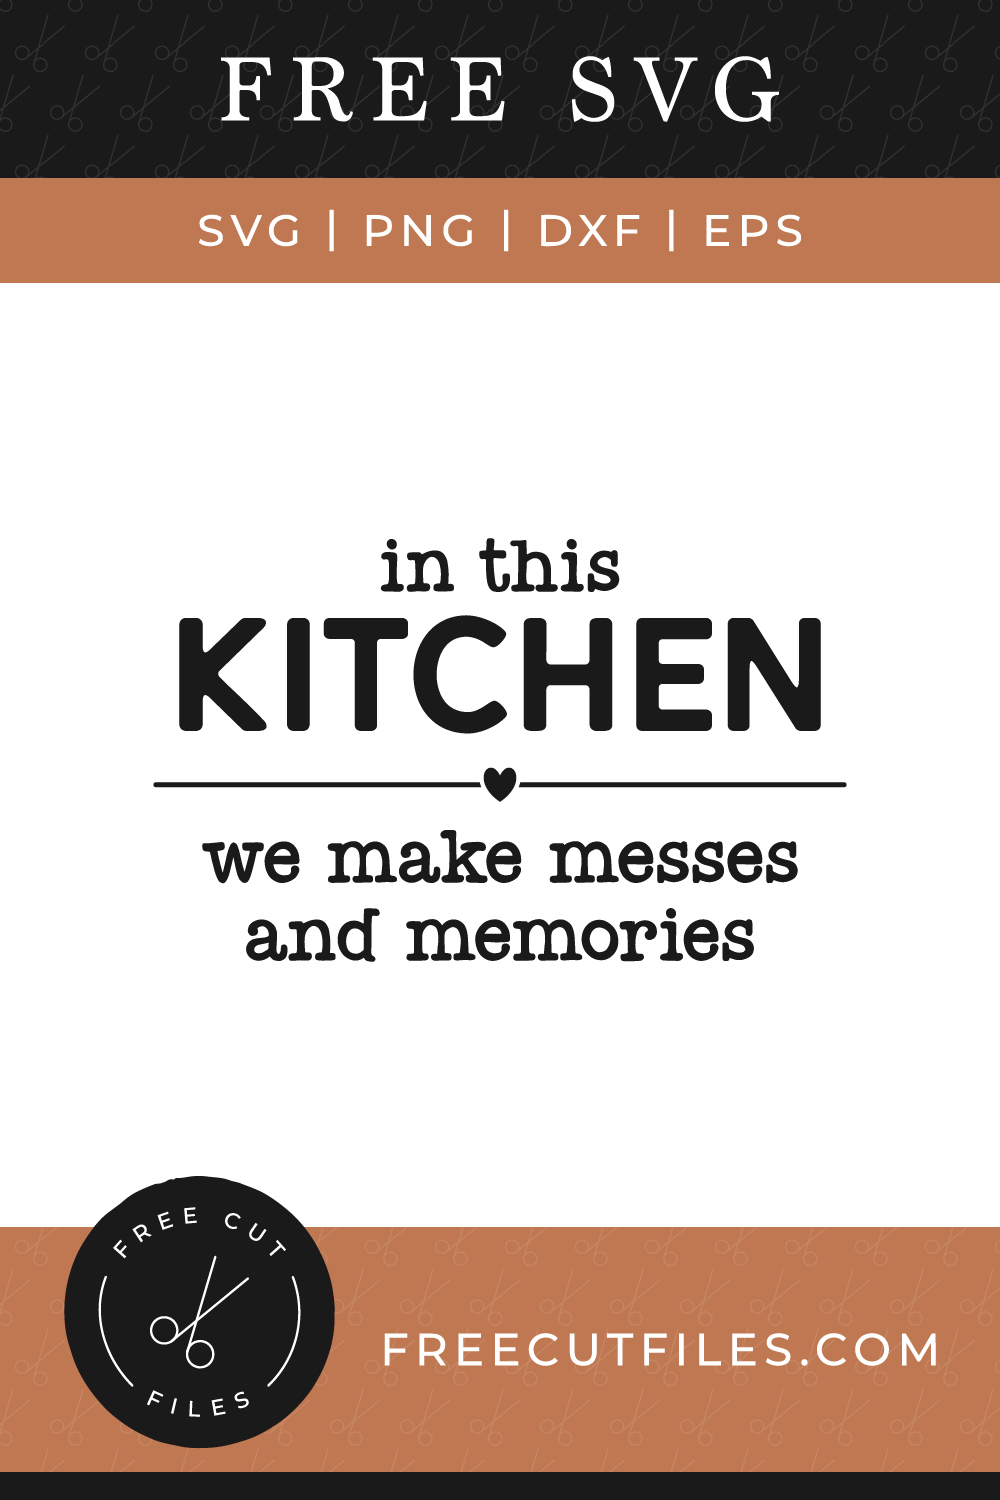 Free In this kitchen we make messes and memories SVG